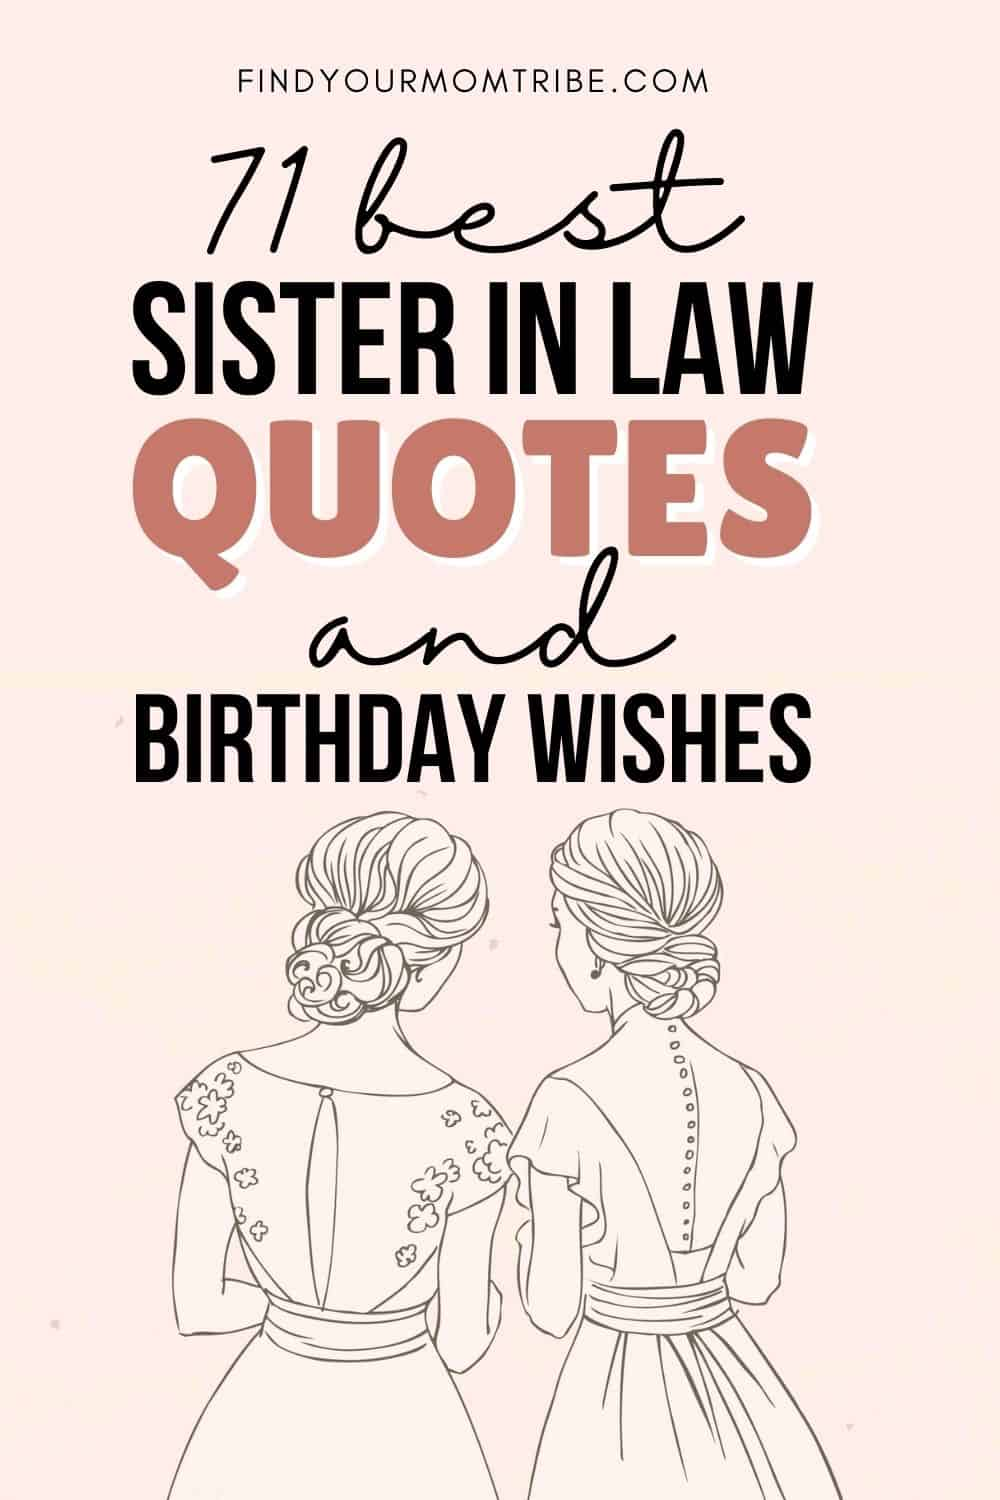 sister in law quotes pinterest